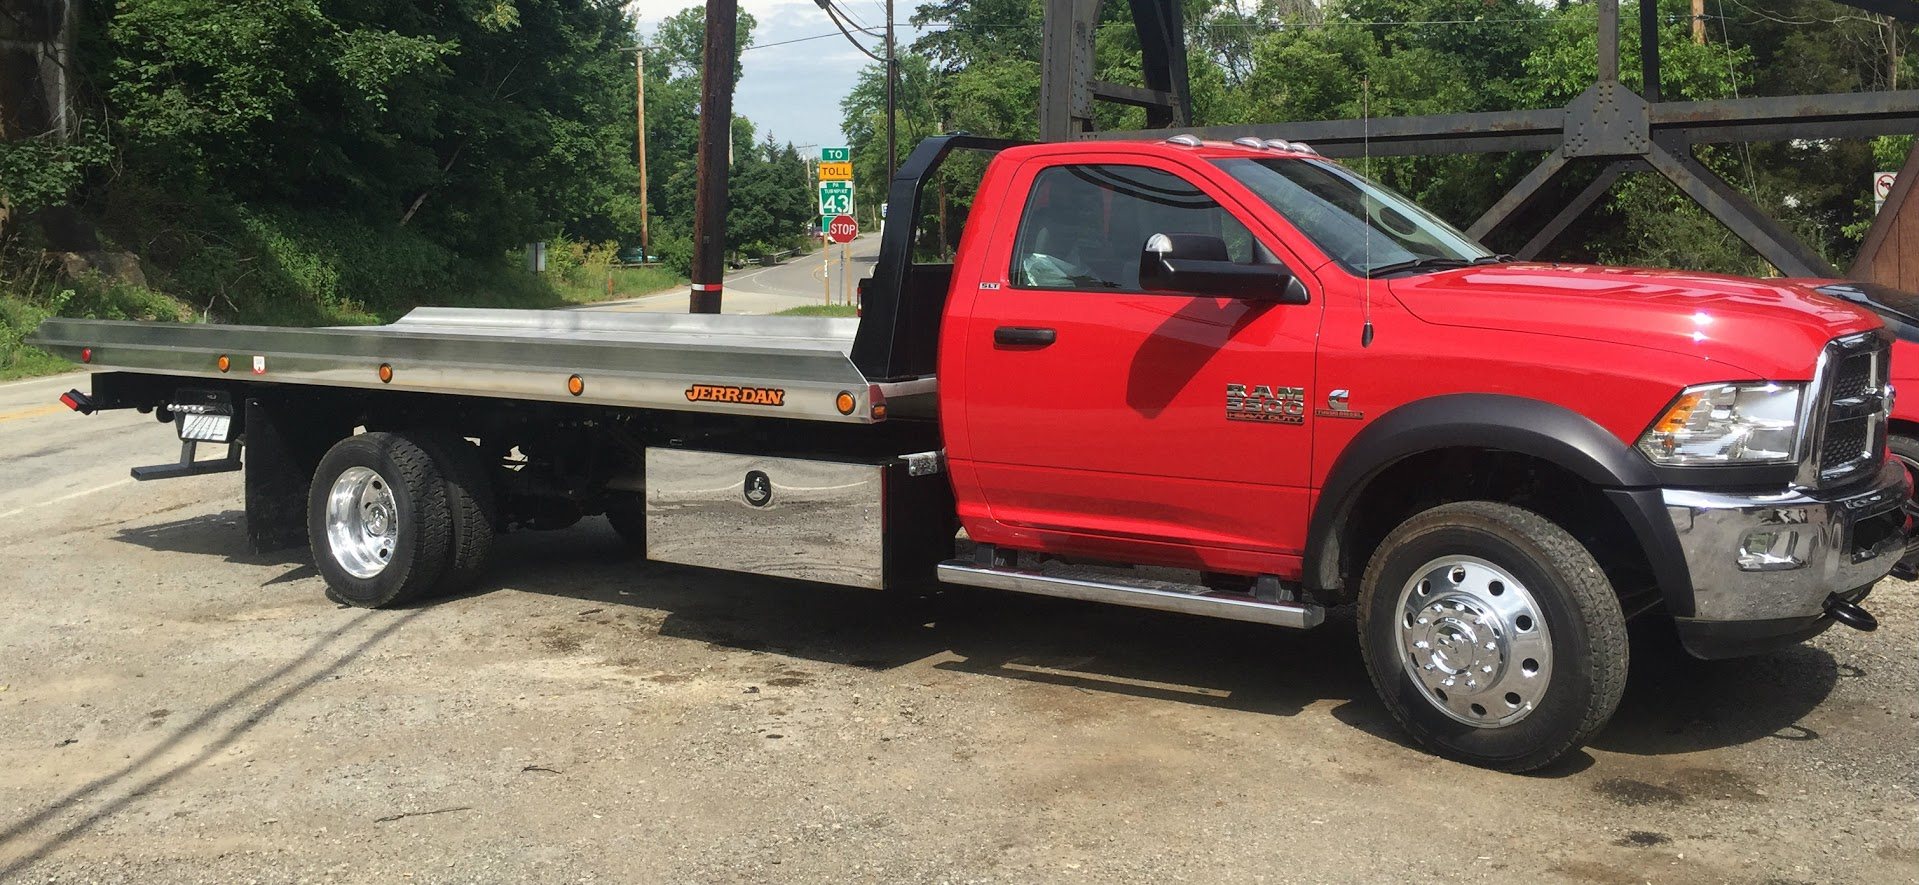 Red dodge carrier